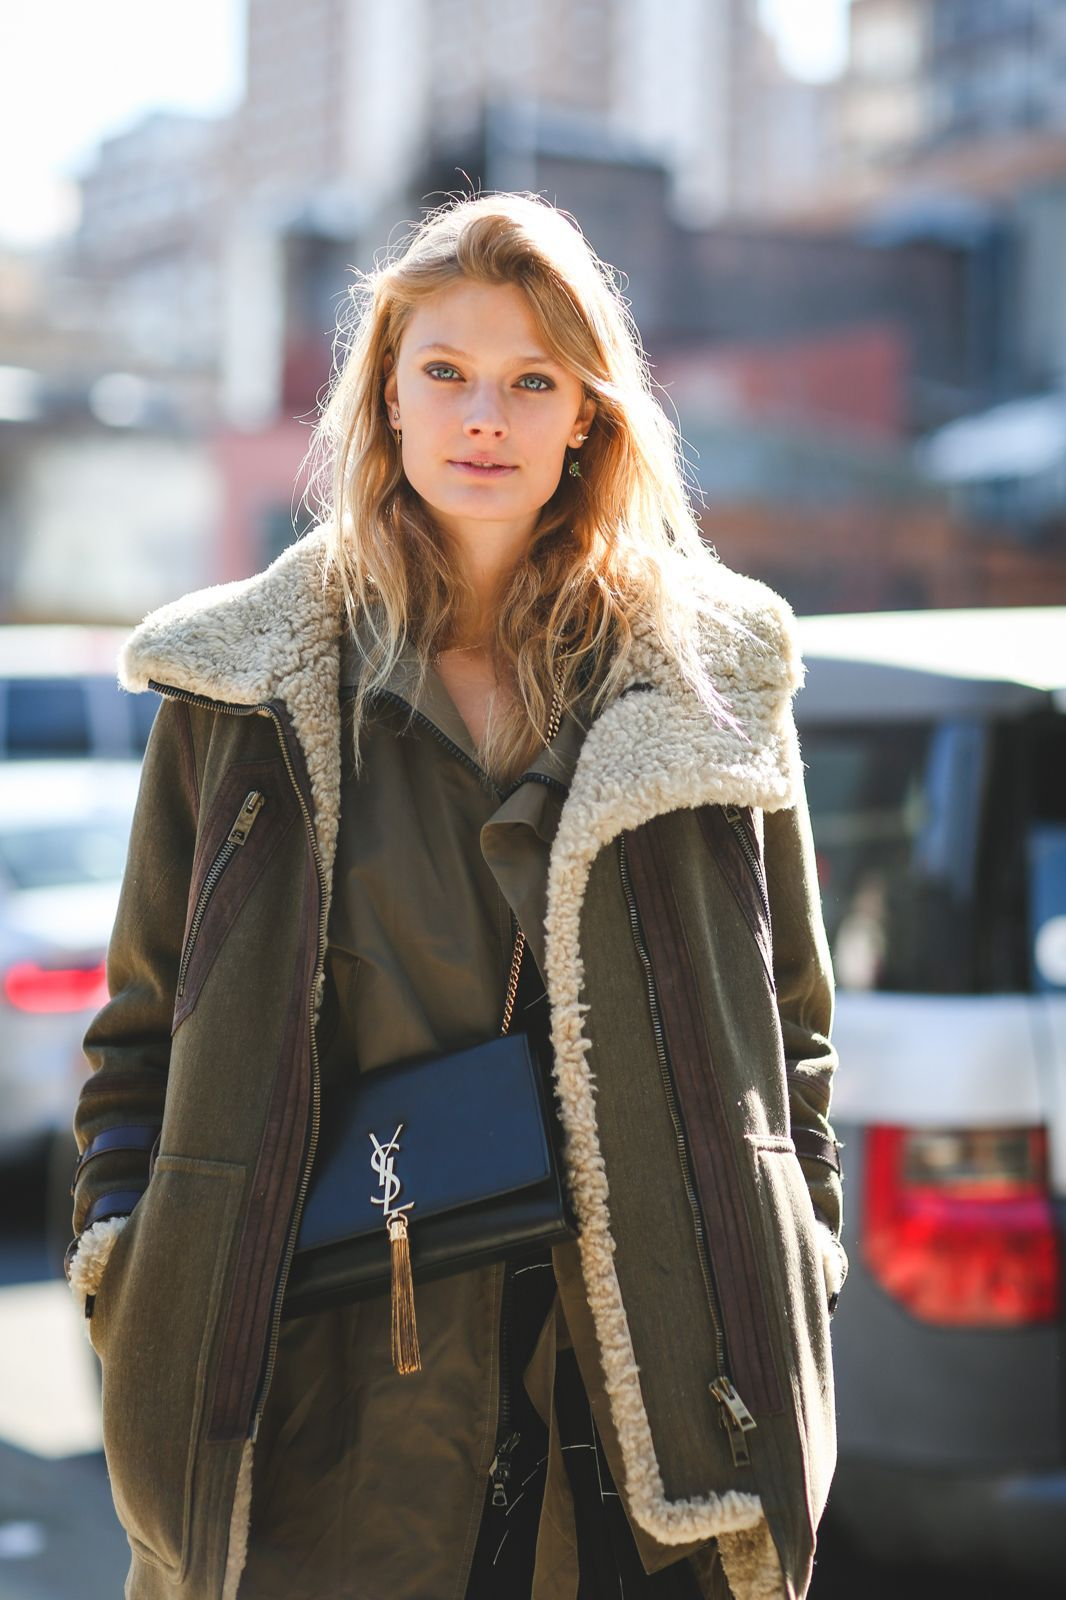 Lessons In Layering From The Streets Of New York City #refinery29 http://www.refinery29.com/2016/02/103173/ny-fashion-week-fall-winter-2016-street-style-pictures#slide-118